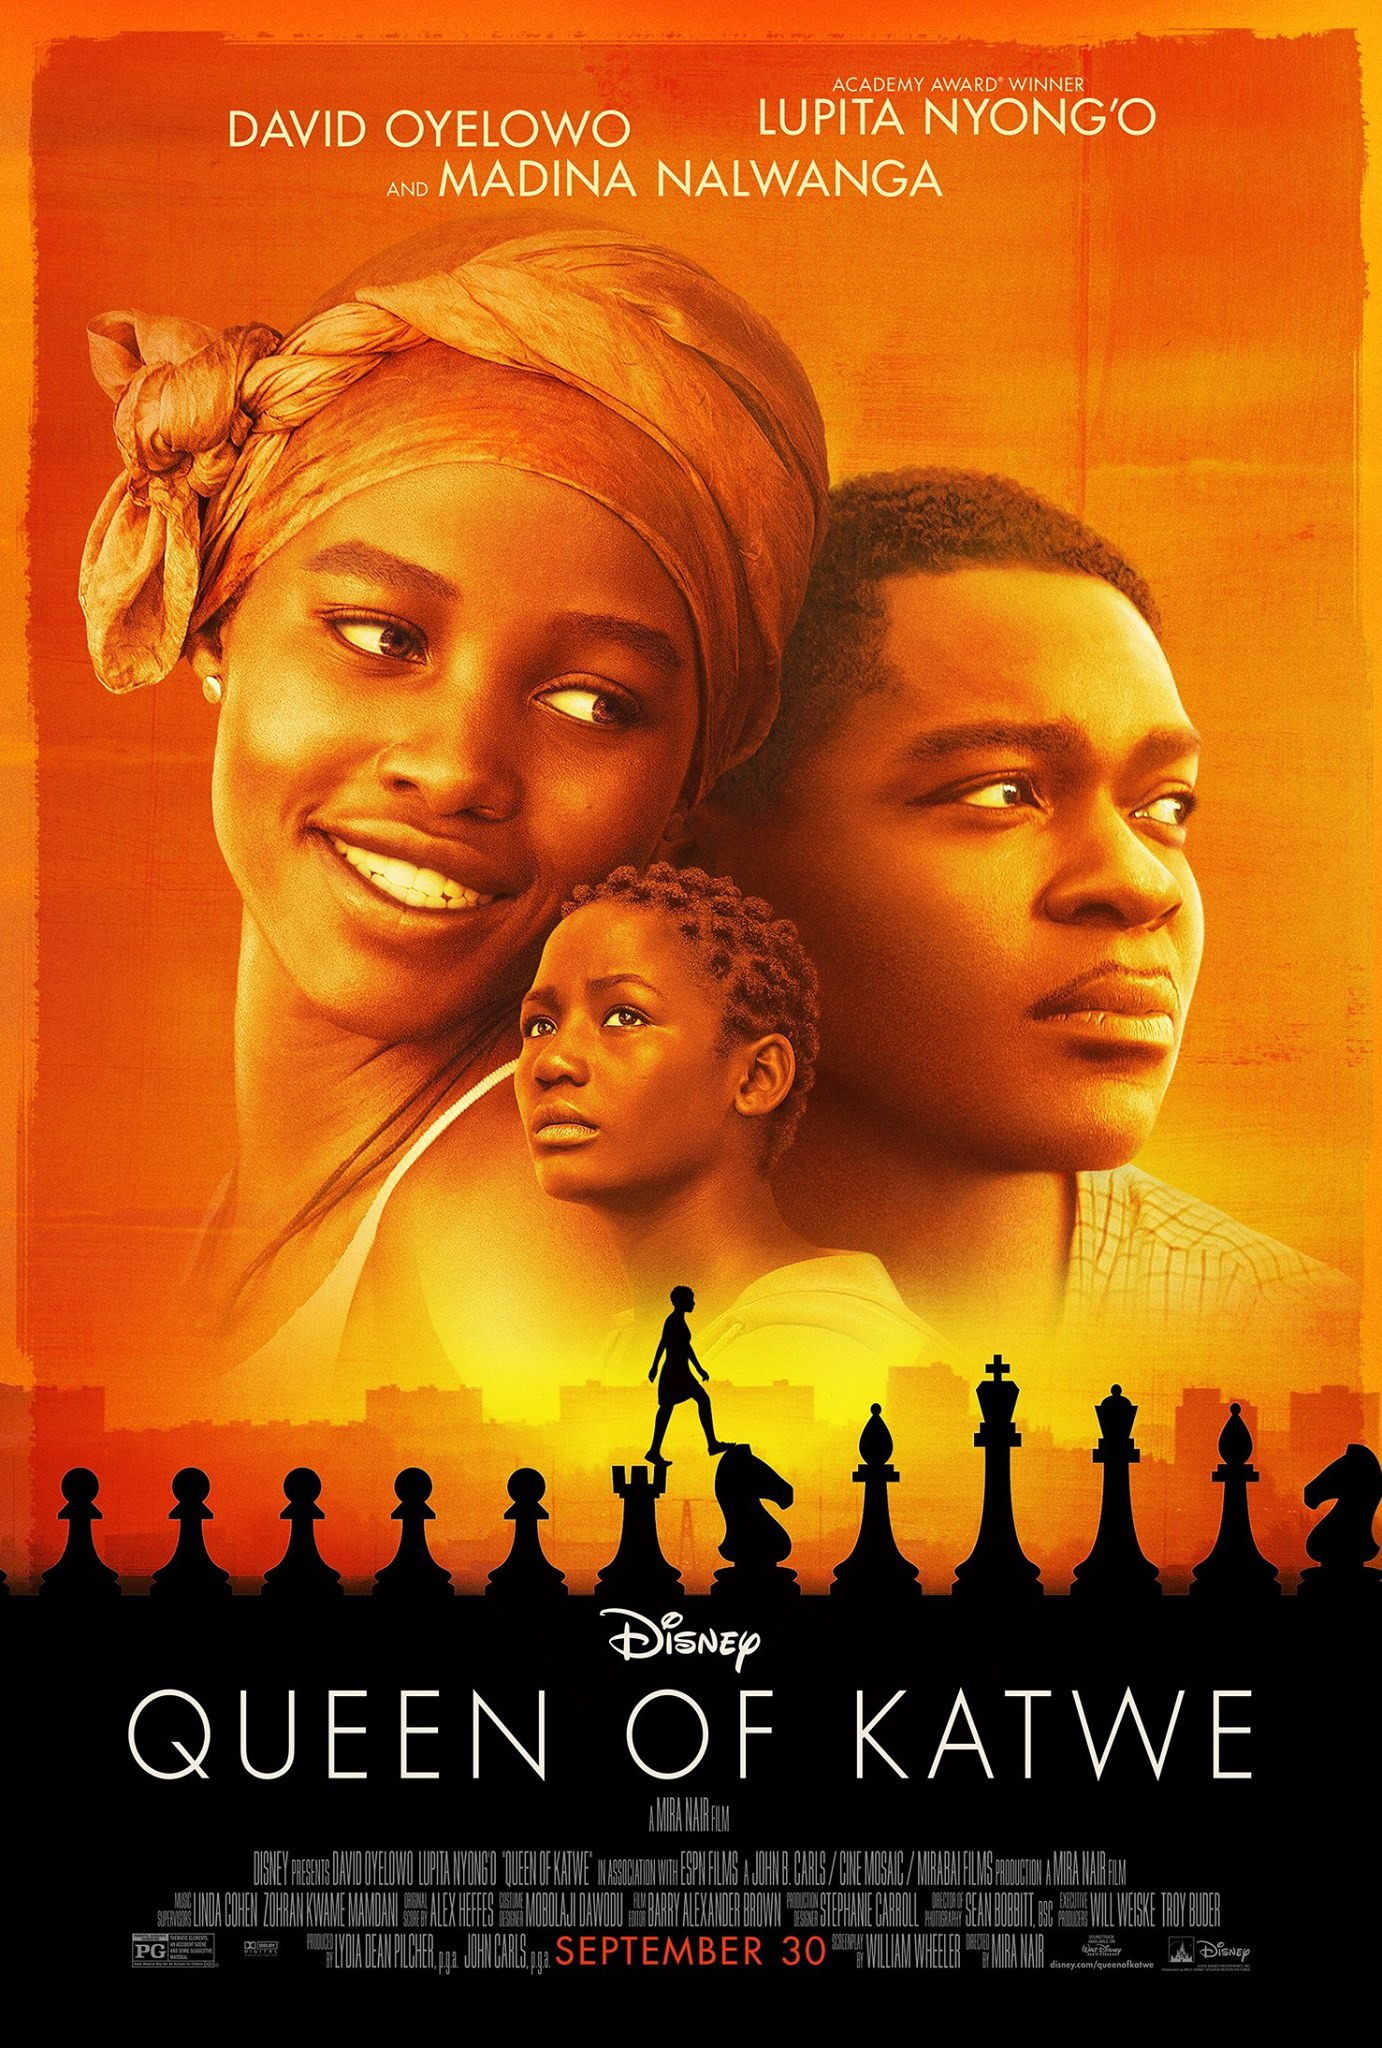 http://www.blackfilm.com/read/wp-content/uploads/2016/08/Queen-of-Katwe-poster-2.jpg